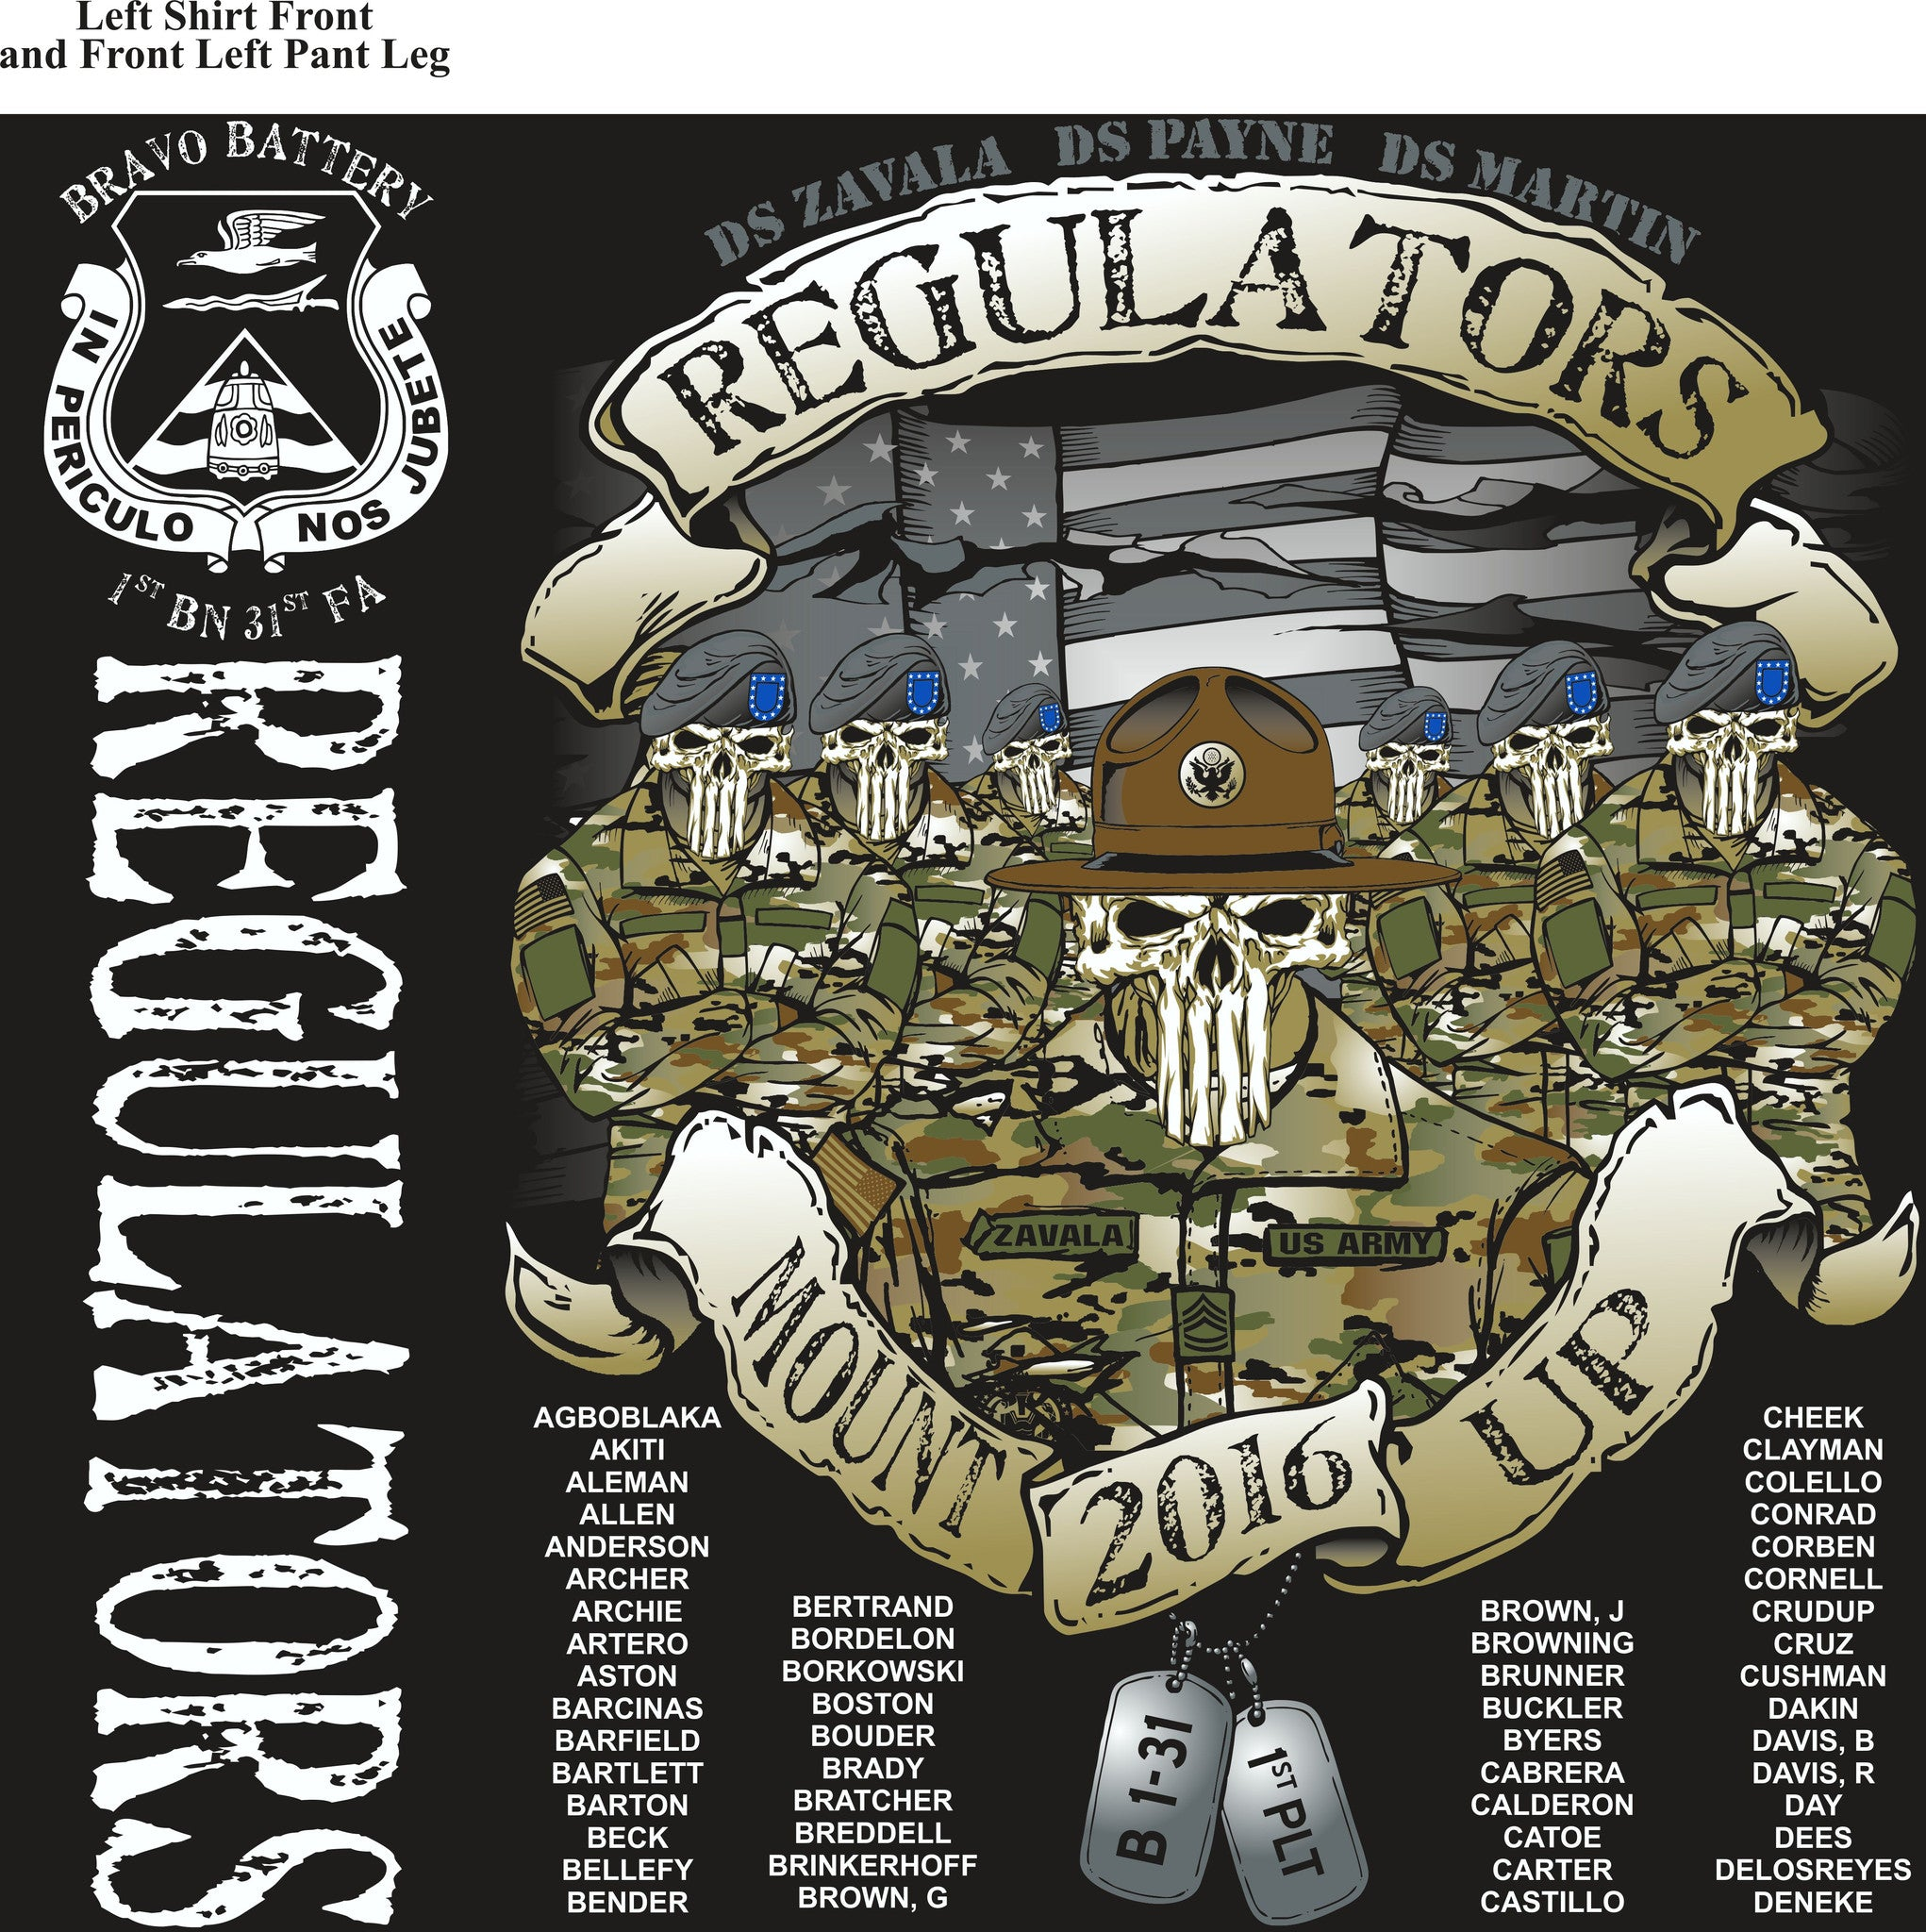 PLATOON SHIRTS (2nd generation print) BRAVO 1st 31st REGULATORS DEC 2016